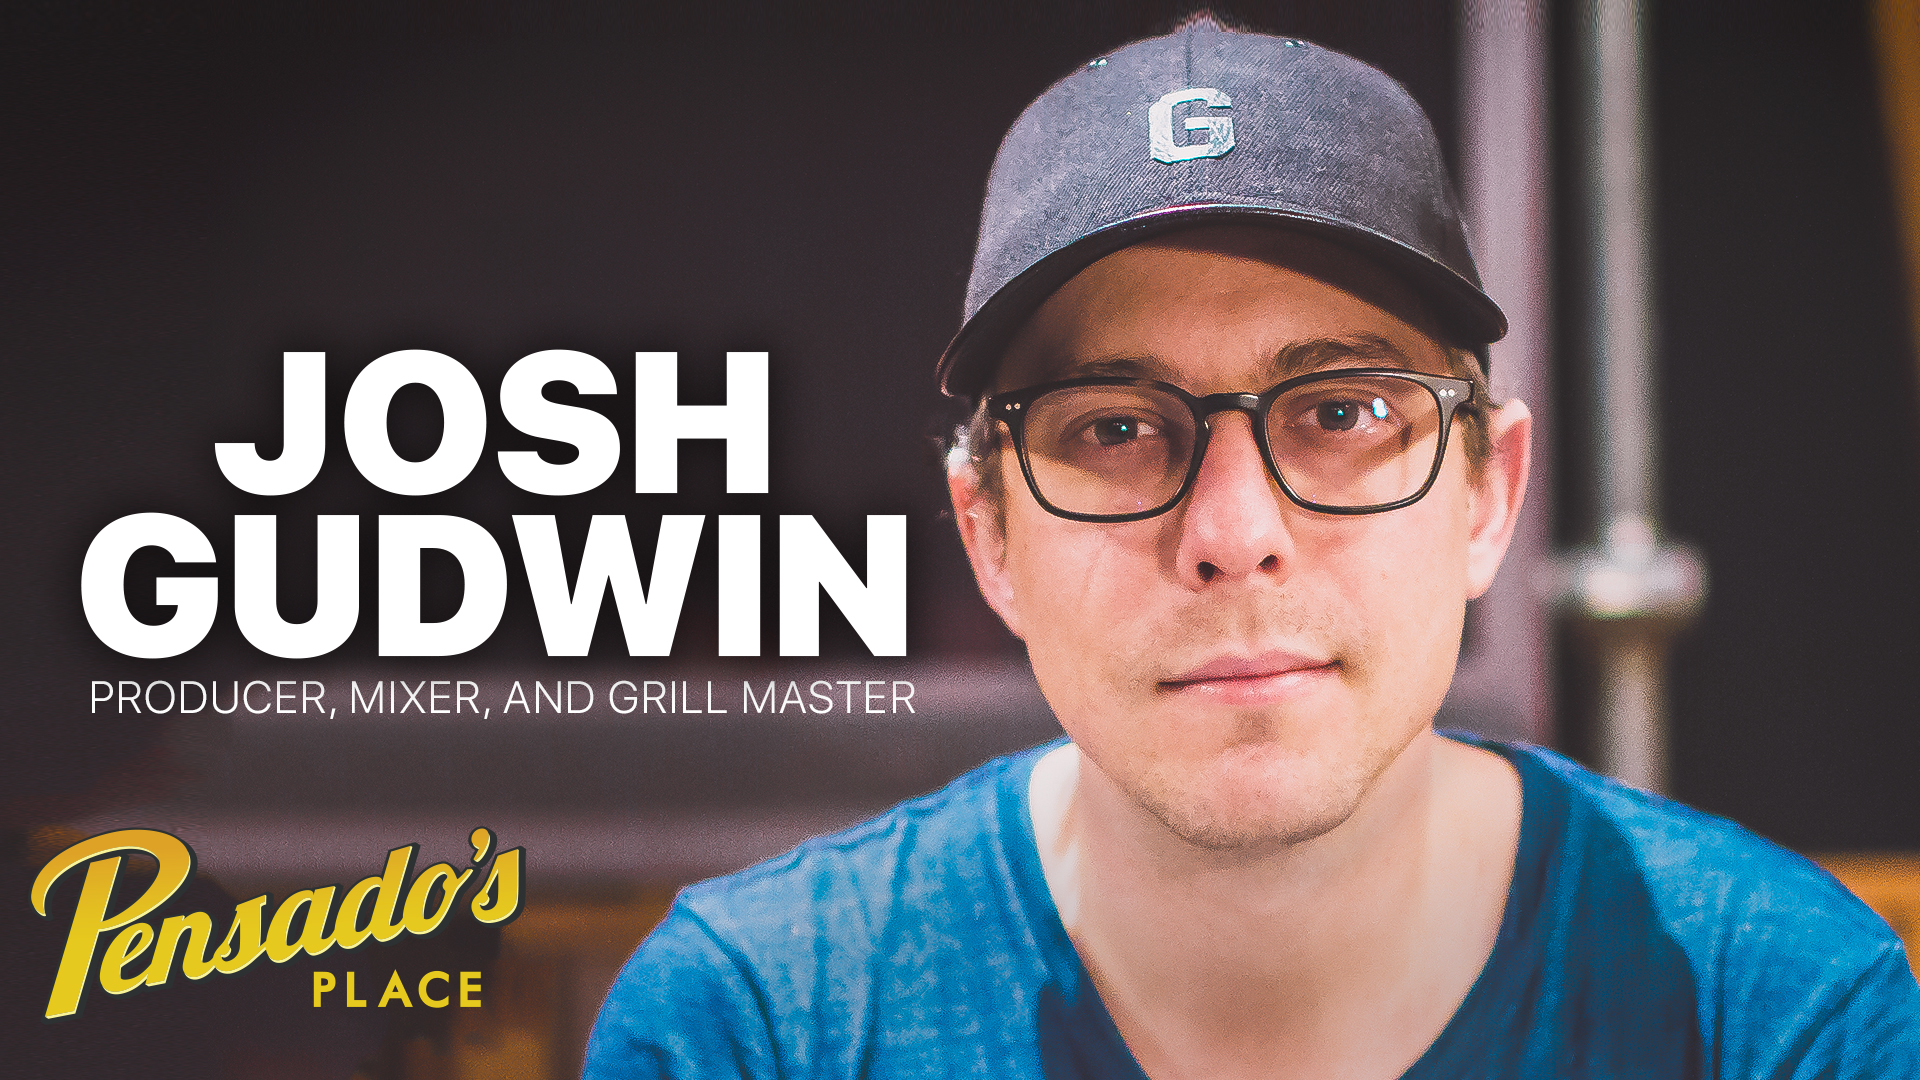 Grammy Award Winning Producer / Mixer / Grill Master, Josh Gudwin